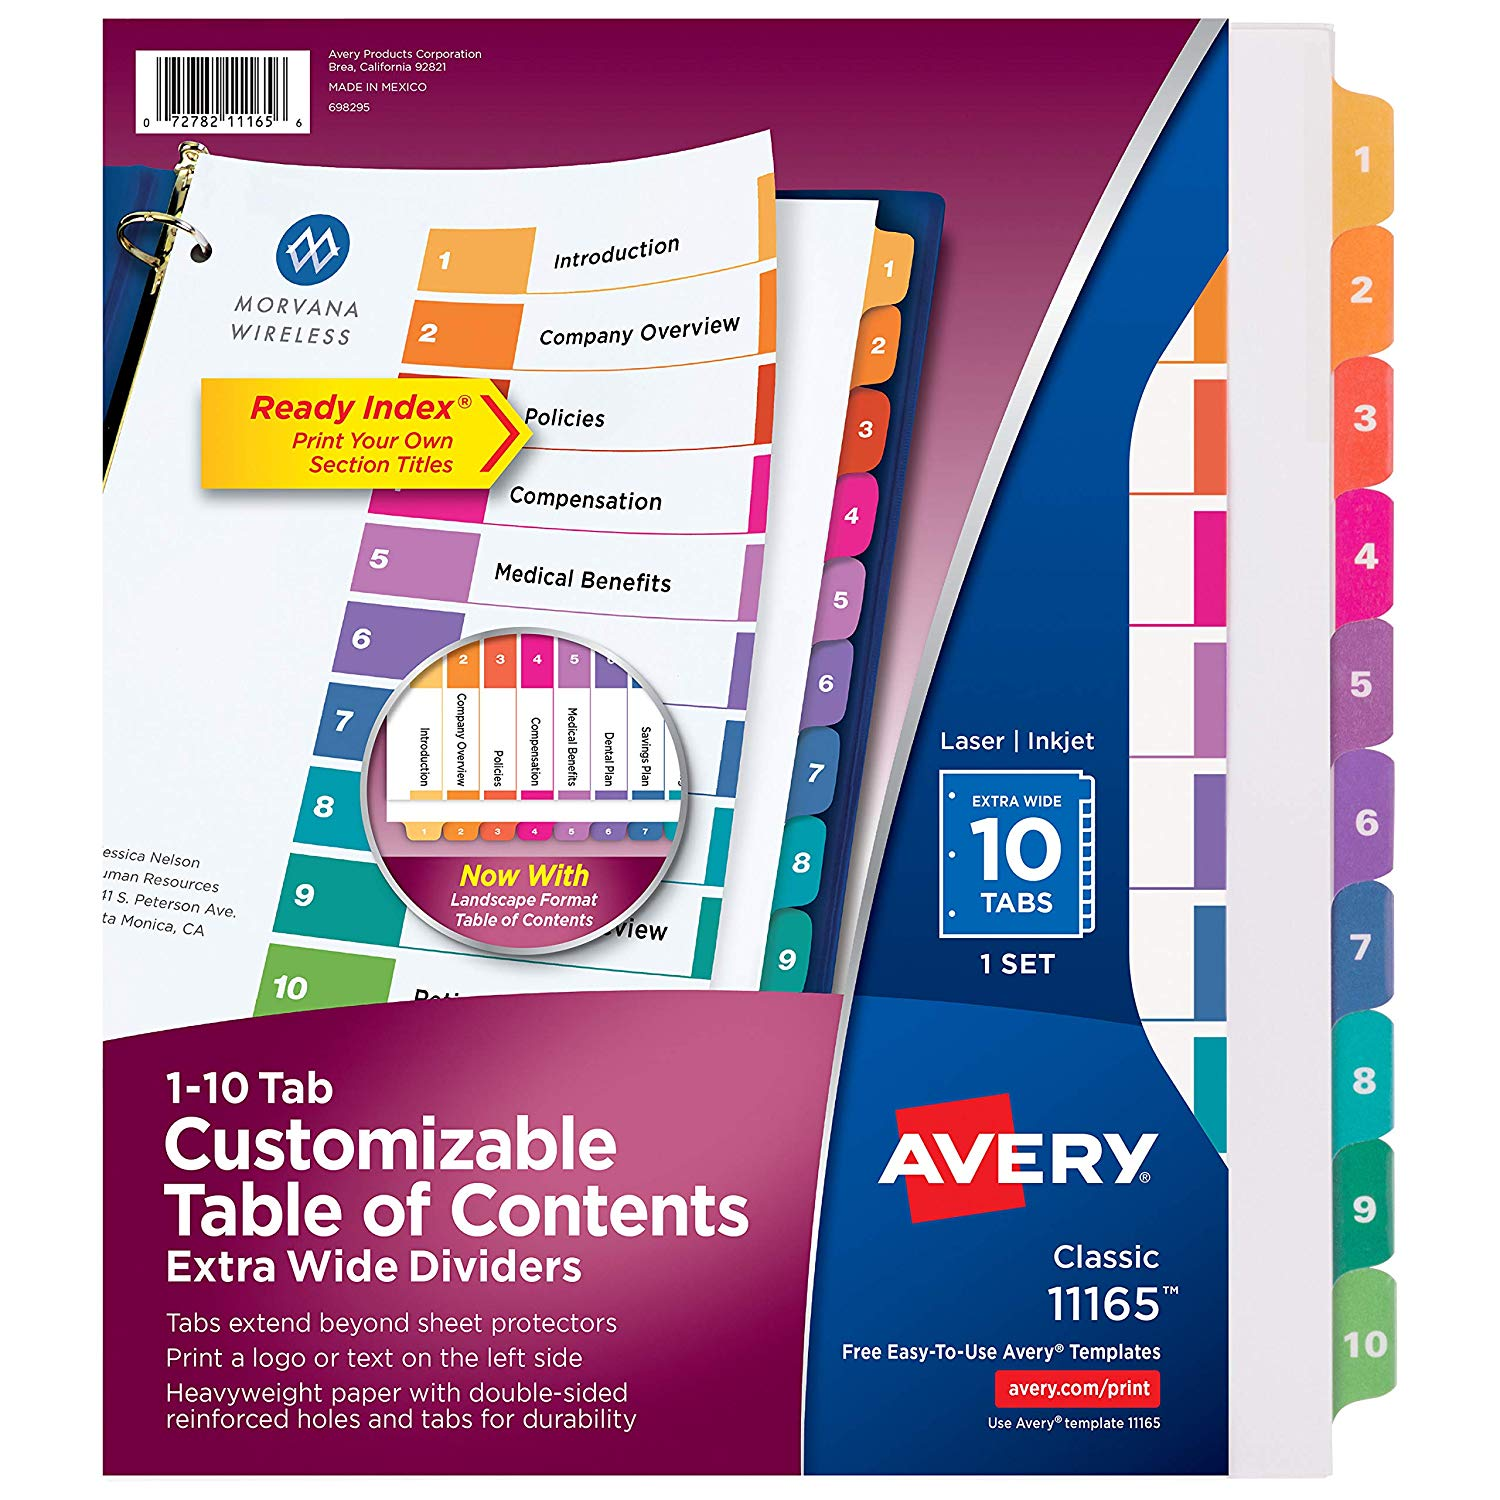 Avery Numbered 1-10 Tab Customizable Table of Contents Extra Wide Dividers (11165)